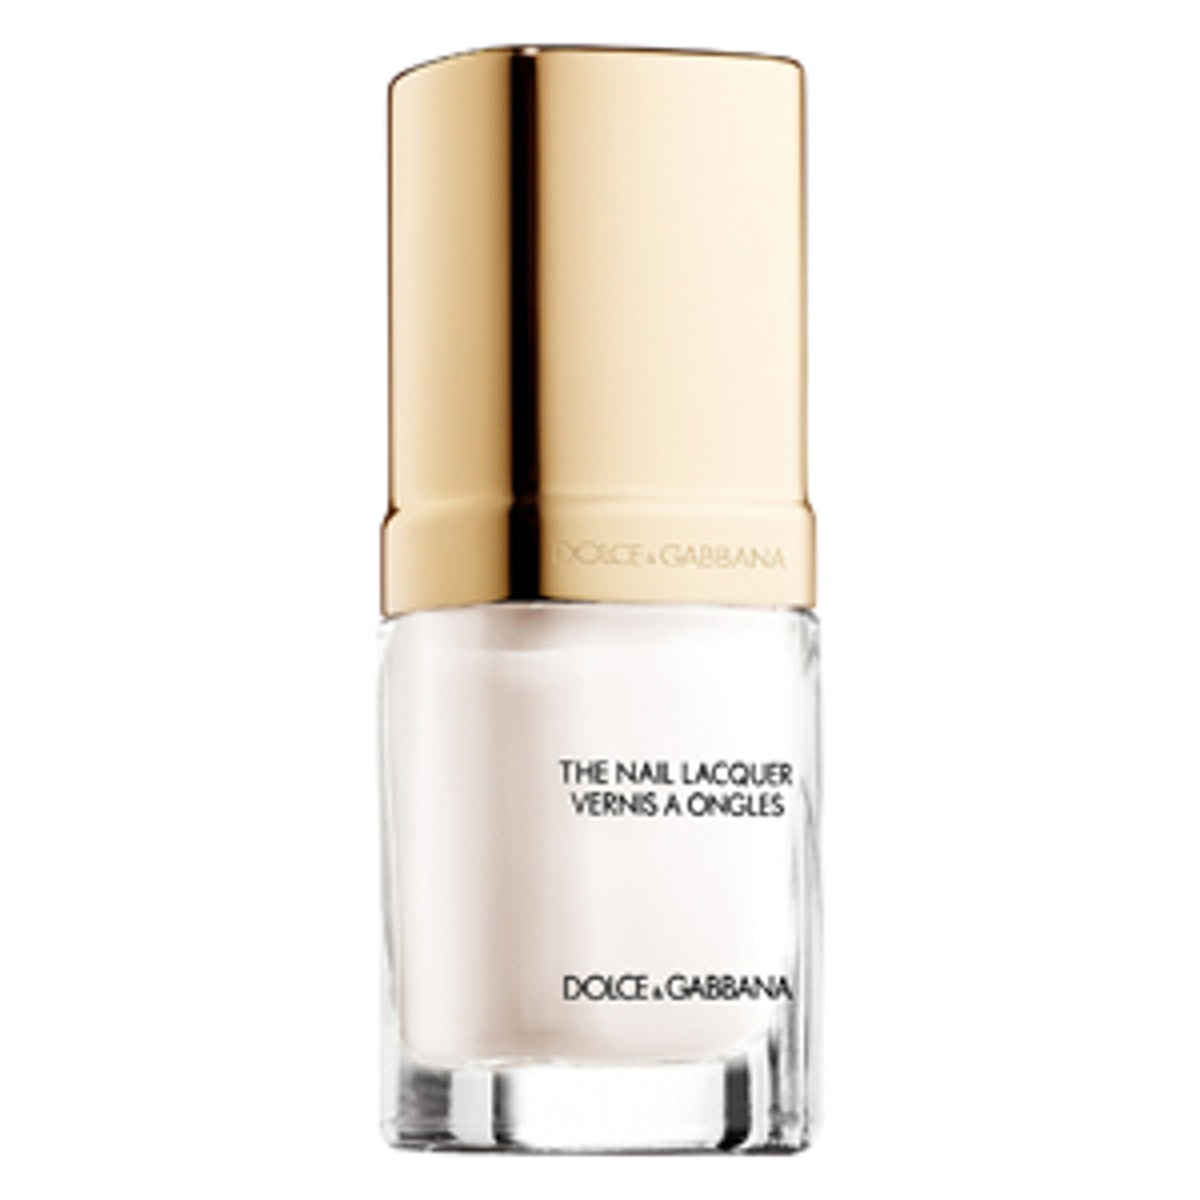 The Nail Lacquer in 101 Innocence